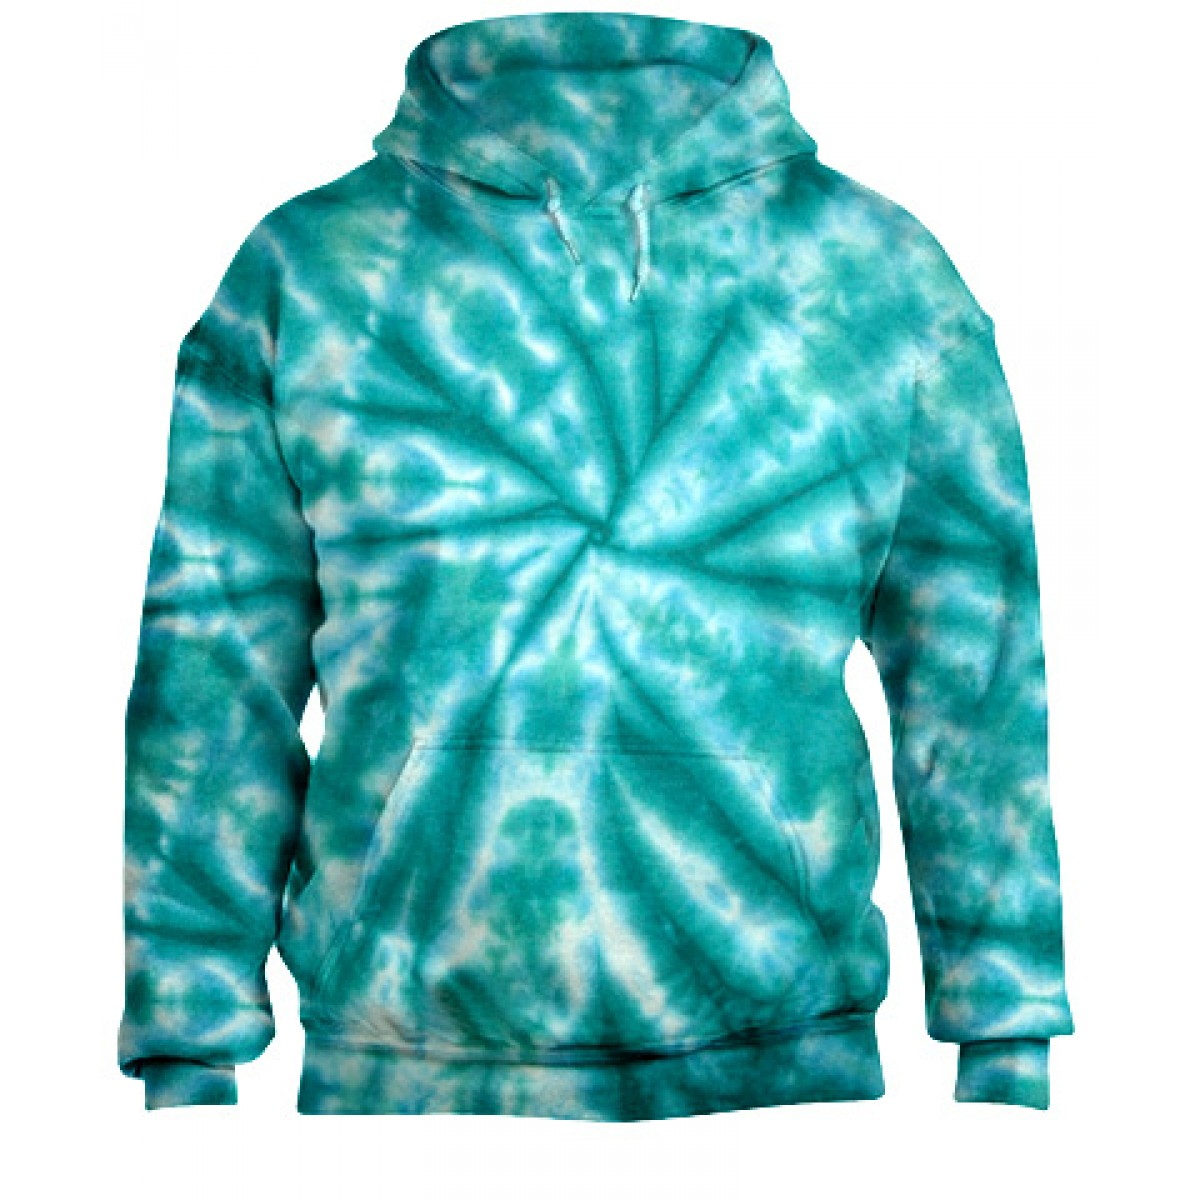 Tie-Dye Pullover Hooded Sweatshirt-Jade-3XL